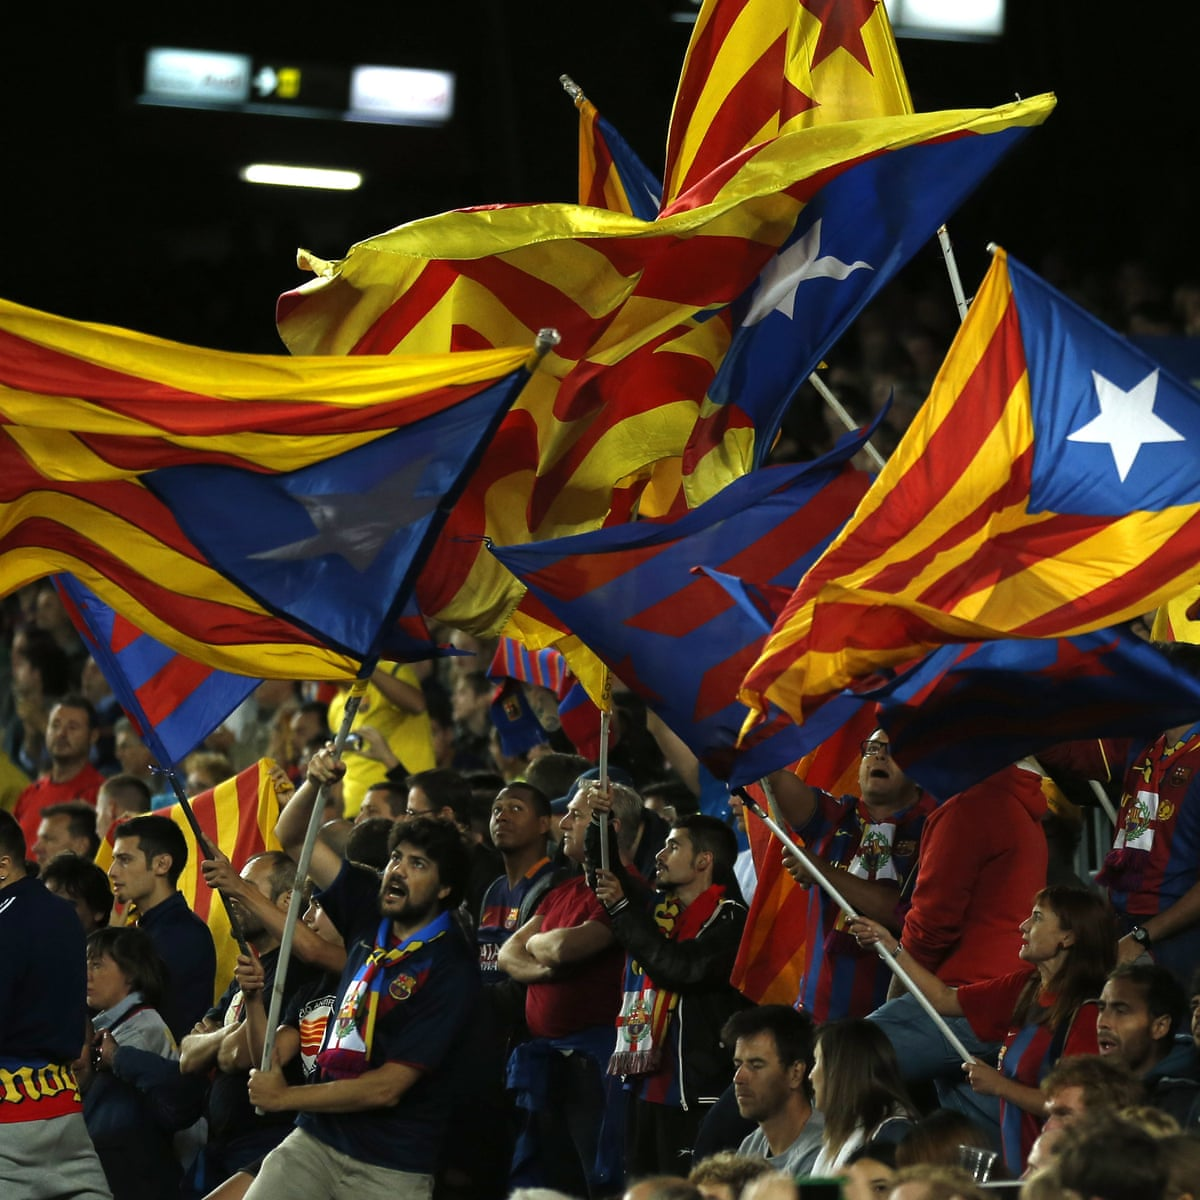 barcelona will fight second uefa fine for catalonia independence flags barcelona the guardian barcelona will fight second uefa fine